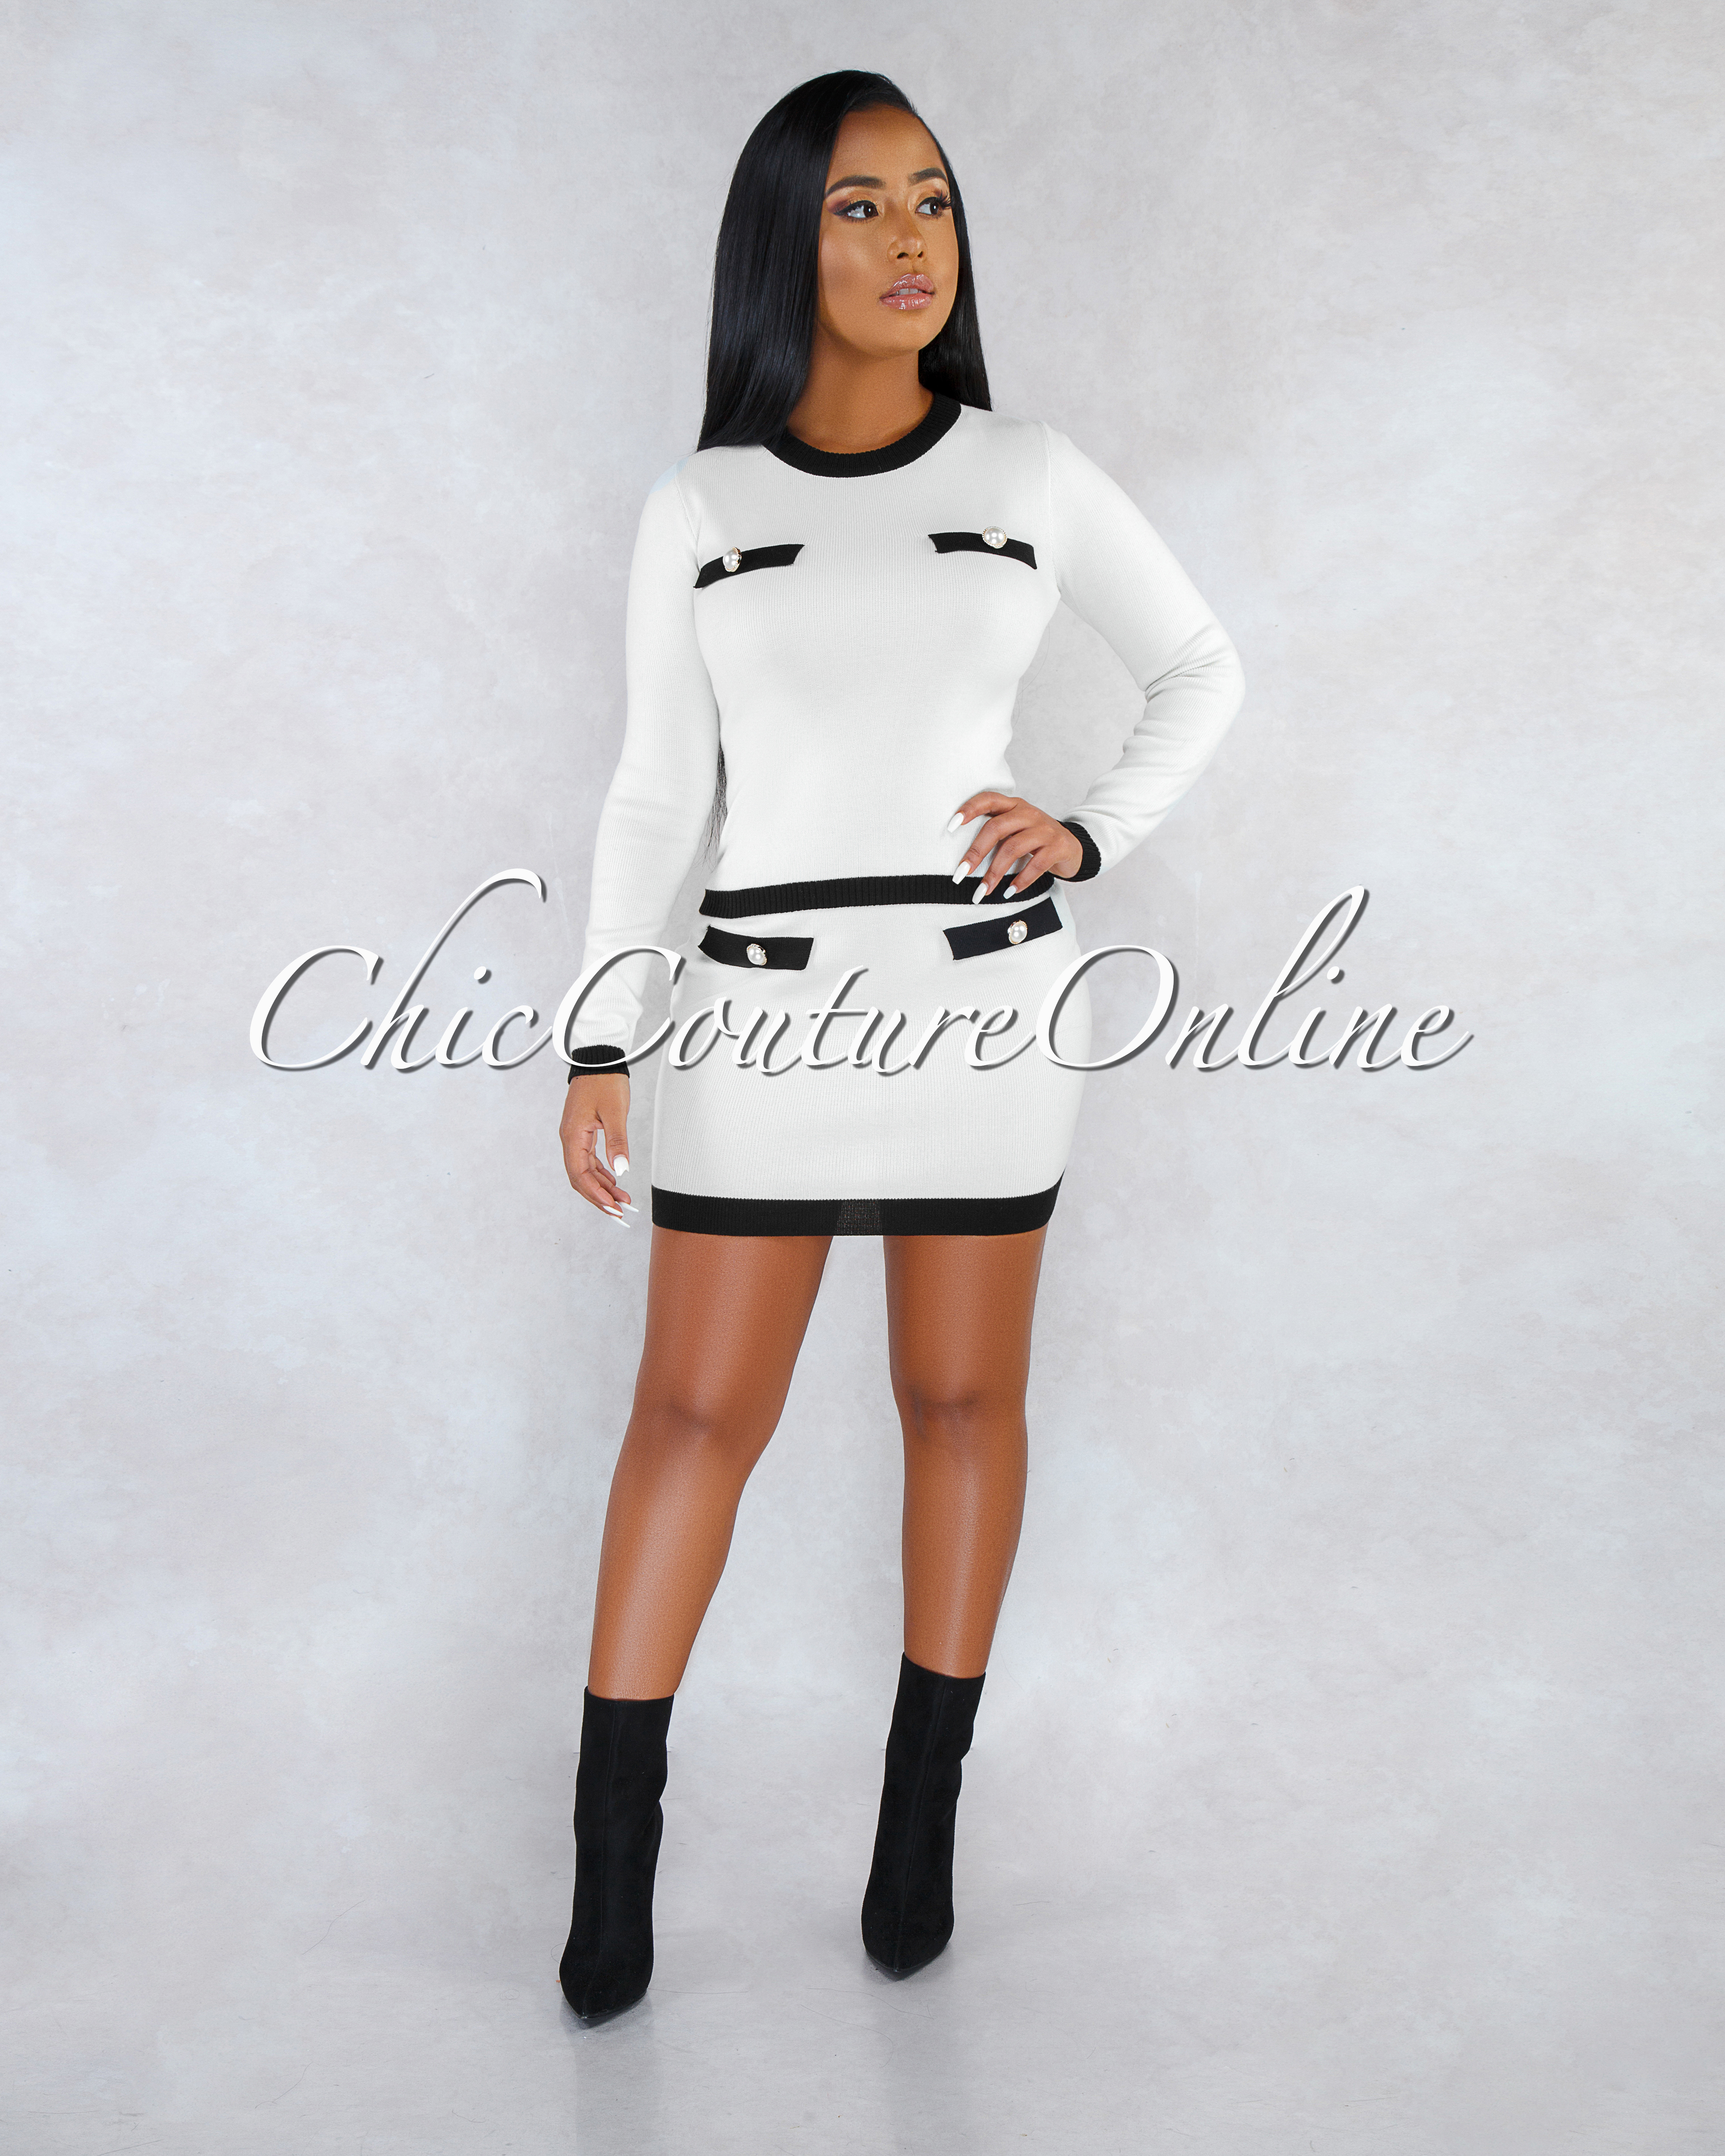 Reyna Ivory Black Trim Pearl Buttons Knit Two Piece Set